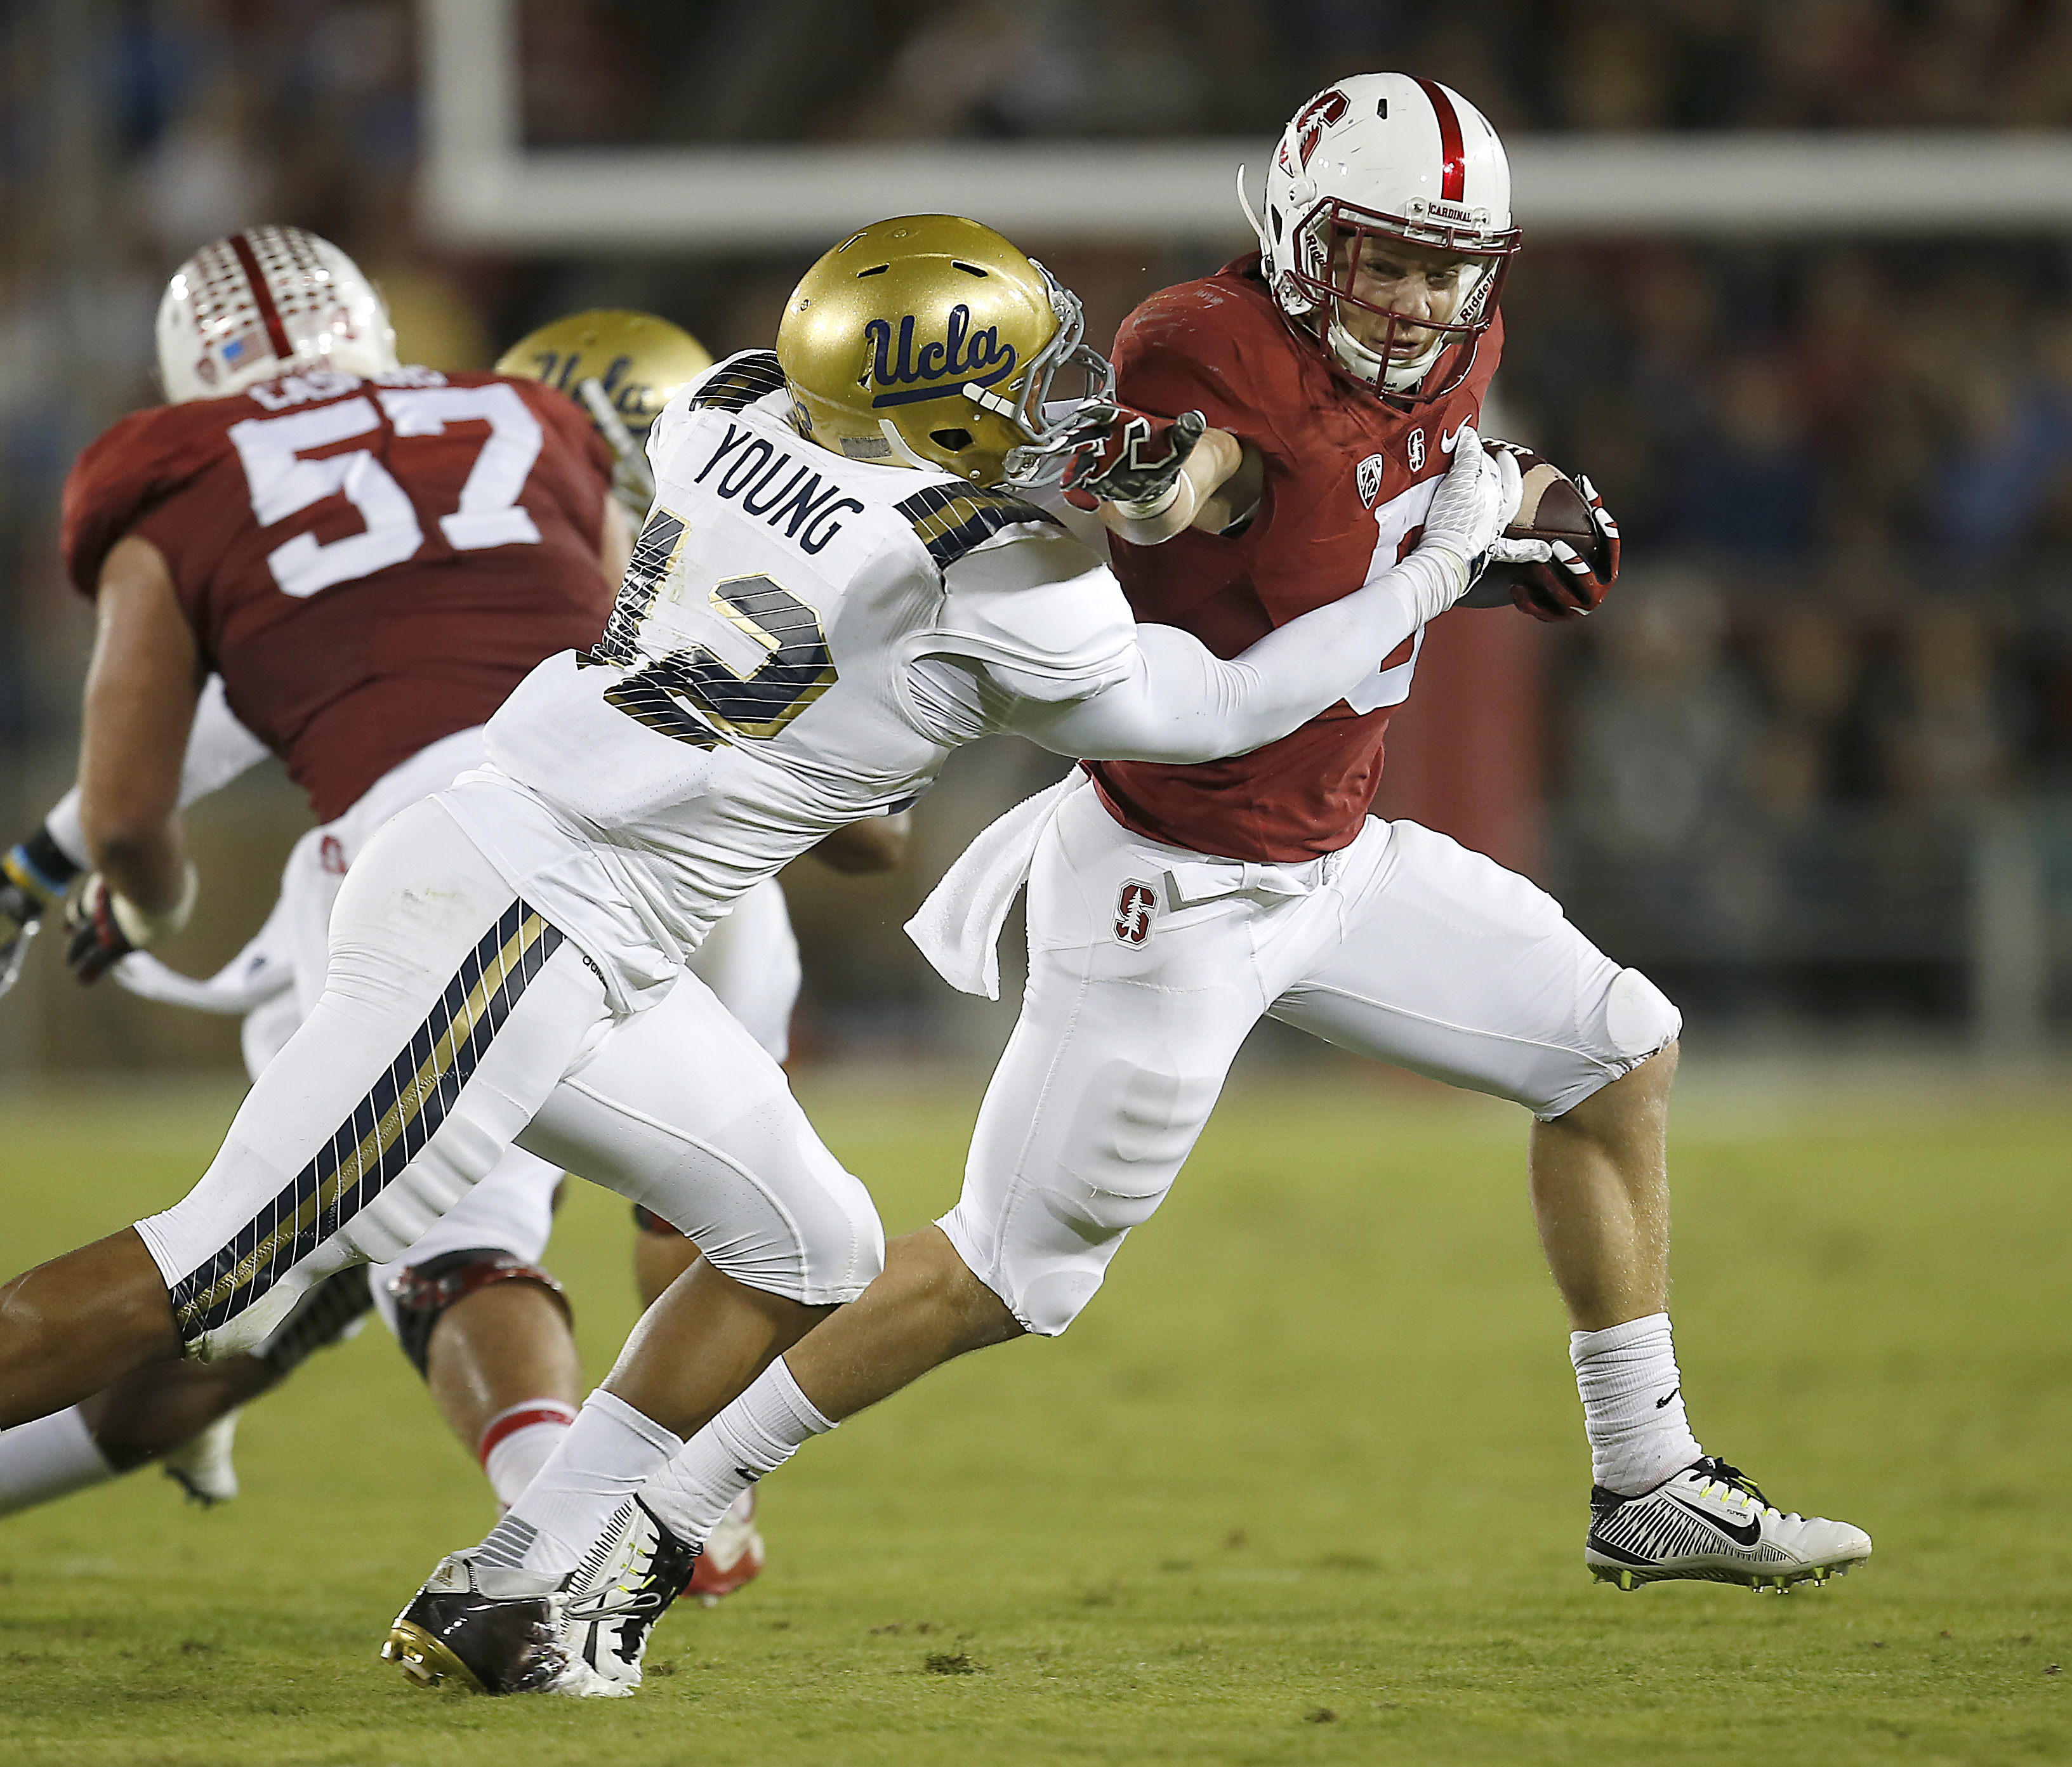 Stanford running back Christian McCaffrey (5) stiff-arms UCLA linebacker Kenny Young (42) during the first half of an NCAA college football game Thursday, Oct. 15, 2015, Stanford, Calif. (AP Photo/Tony Avelar)